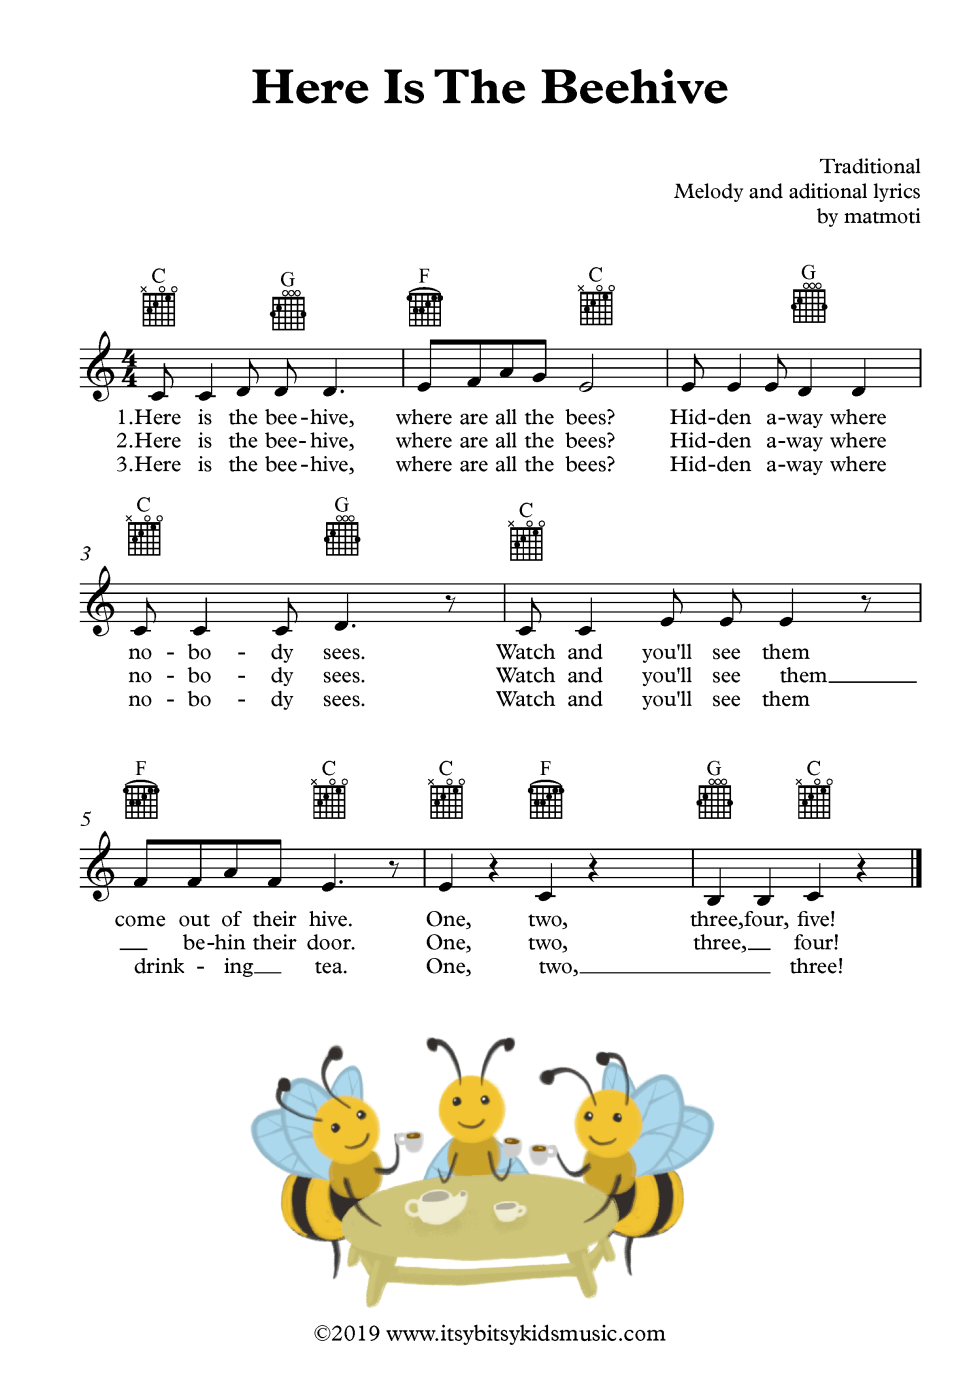 Here is thee beehive sheet music with chords and lyrics